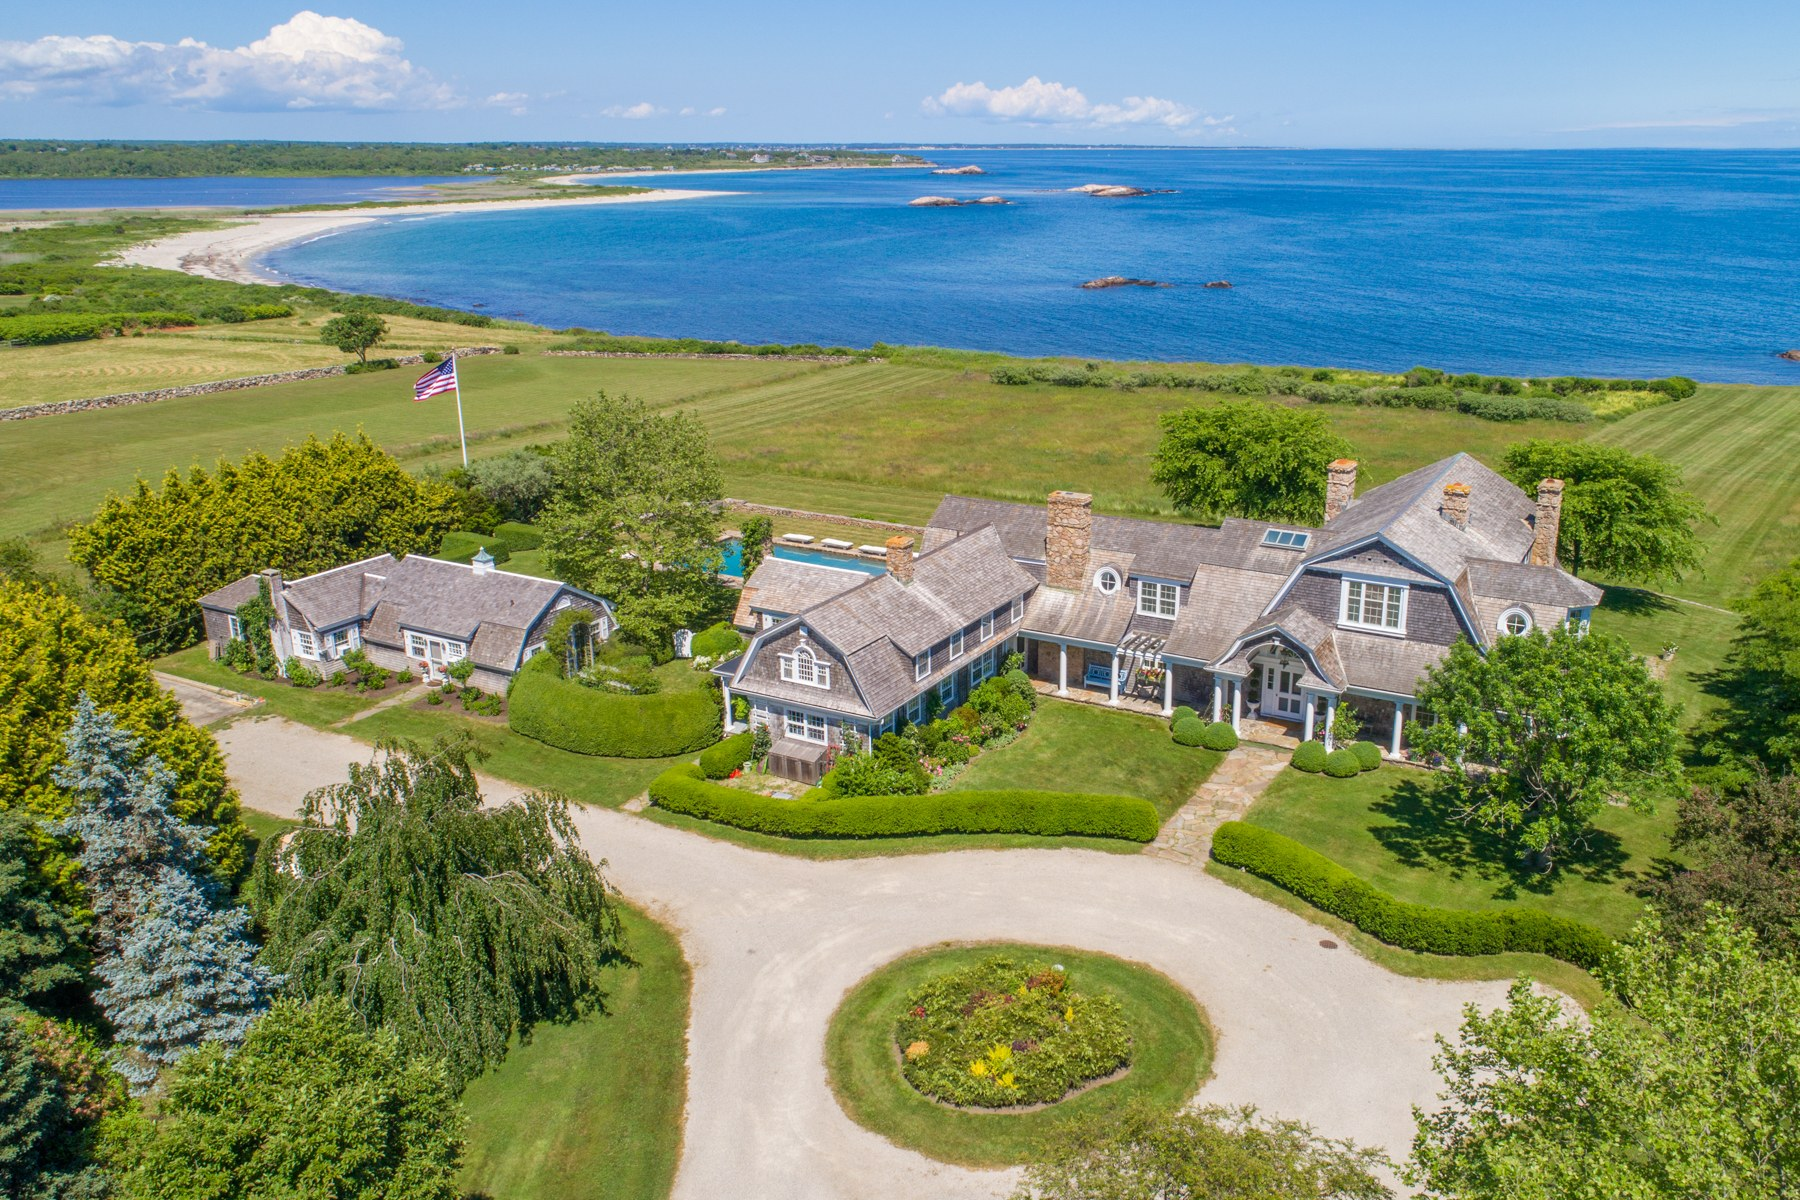 Single Family Homes for Sale at 82 Warrens Point Road Little Compton, Rhode Island 02837 United States